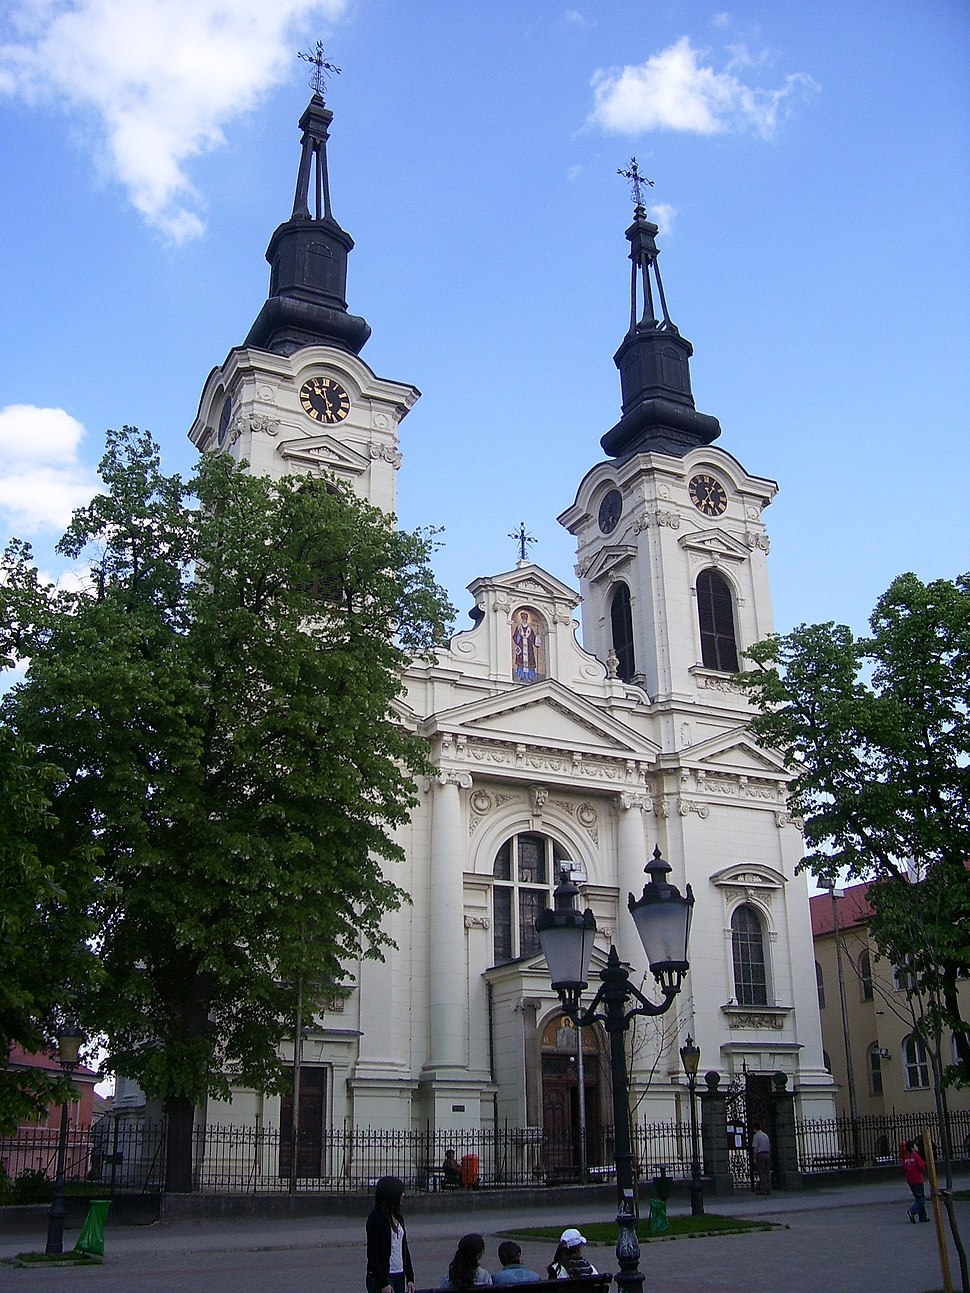 The Orthodox Cathedral of St. Nicholas